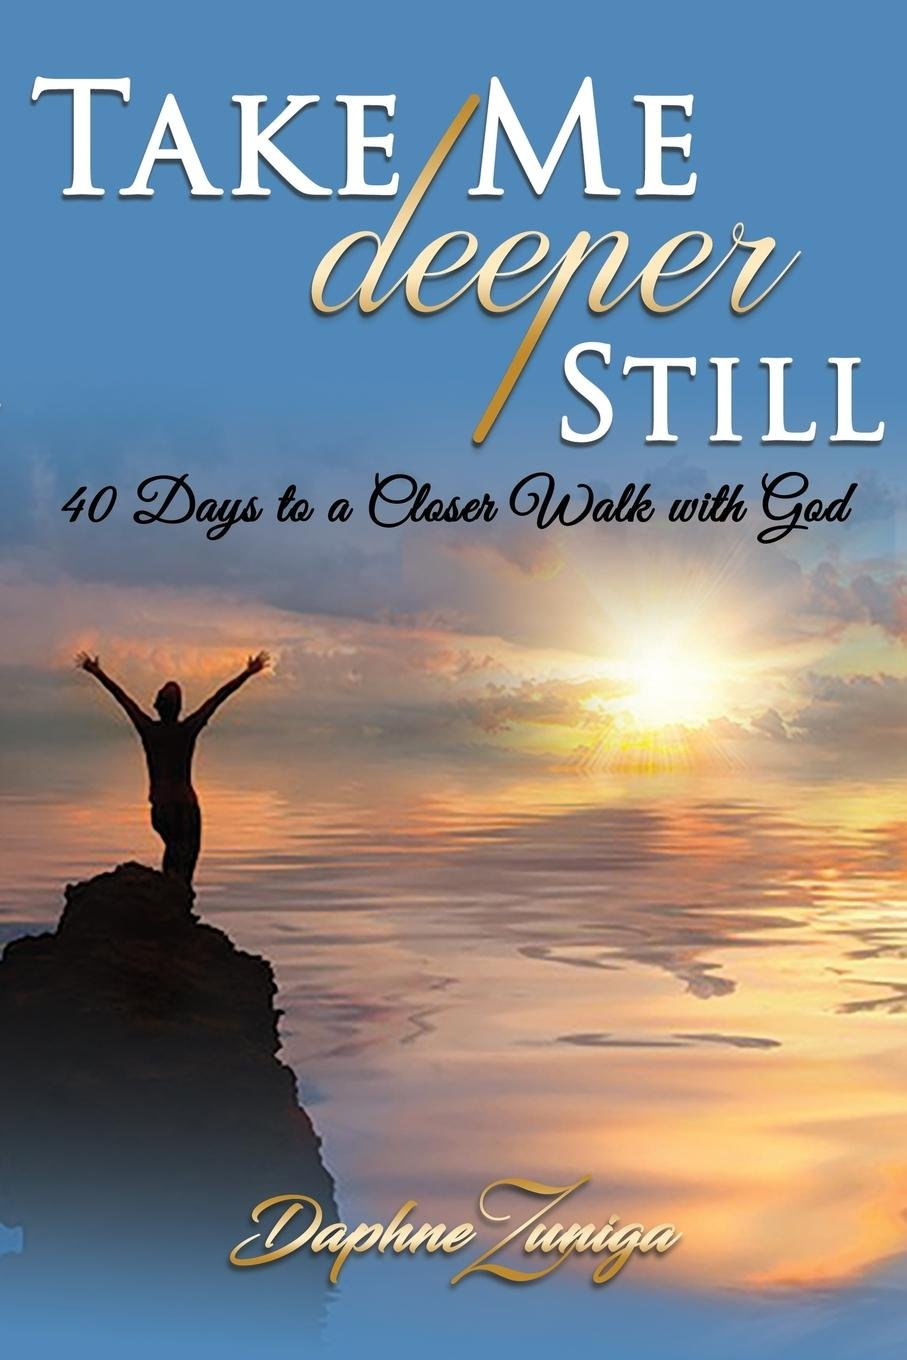 Download Take Me Deeper Still: 40 Days to a Closer Walk with God ebook